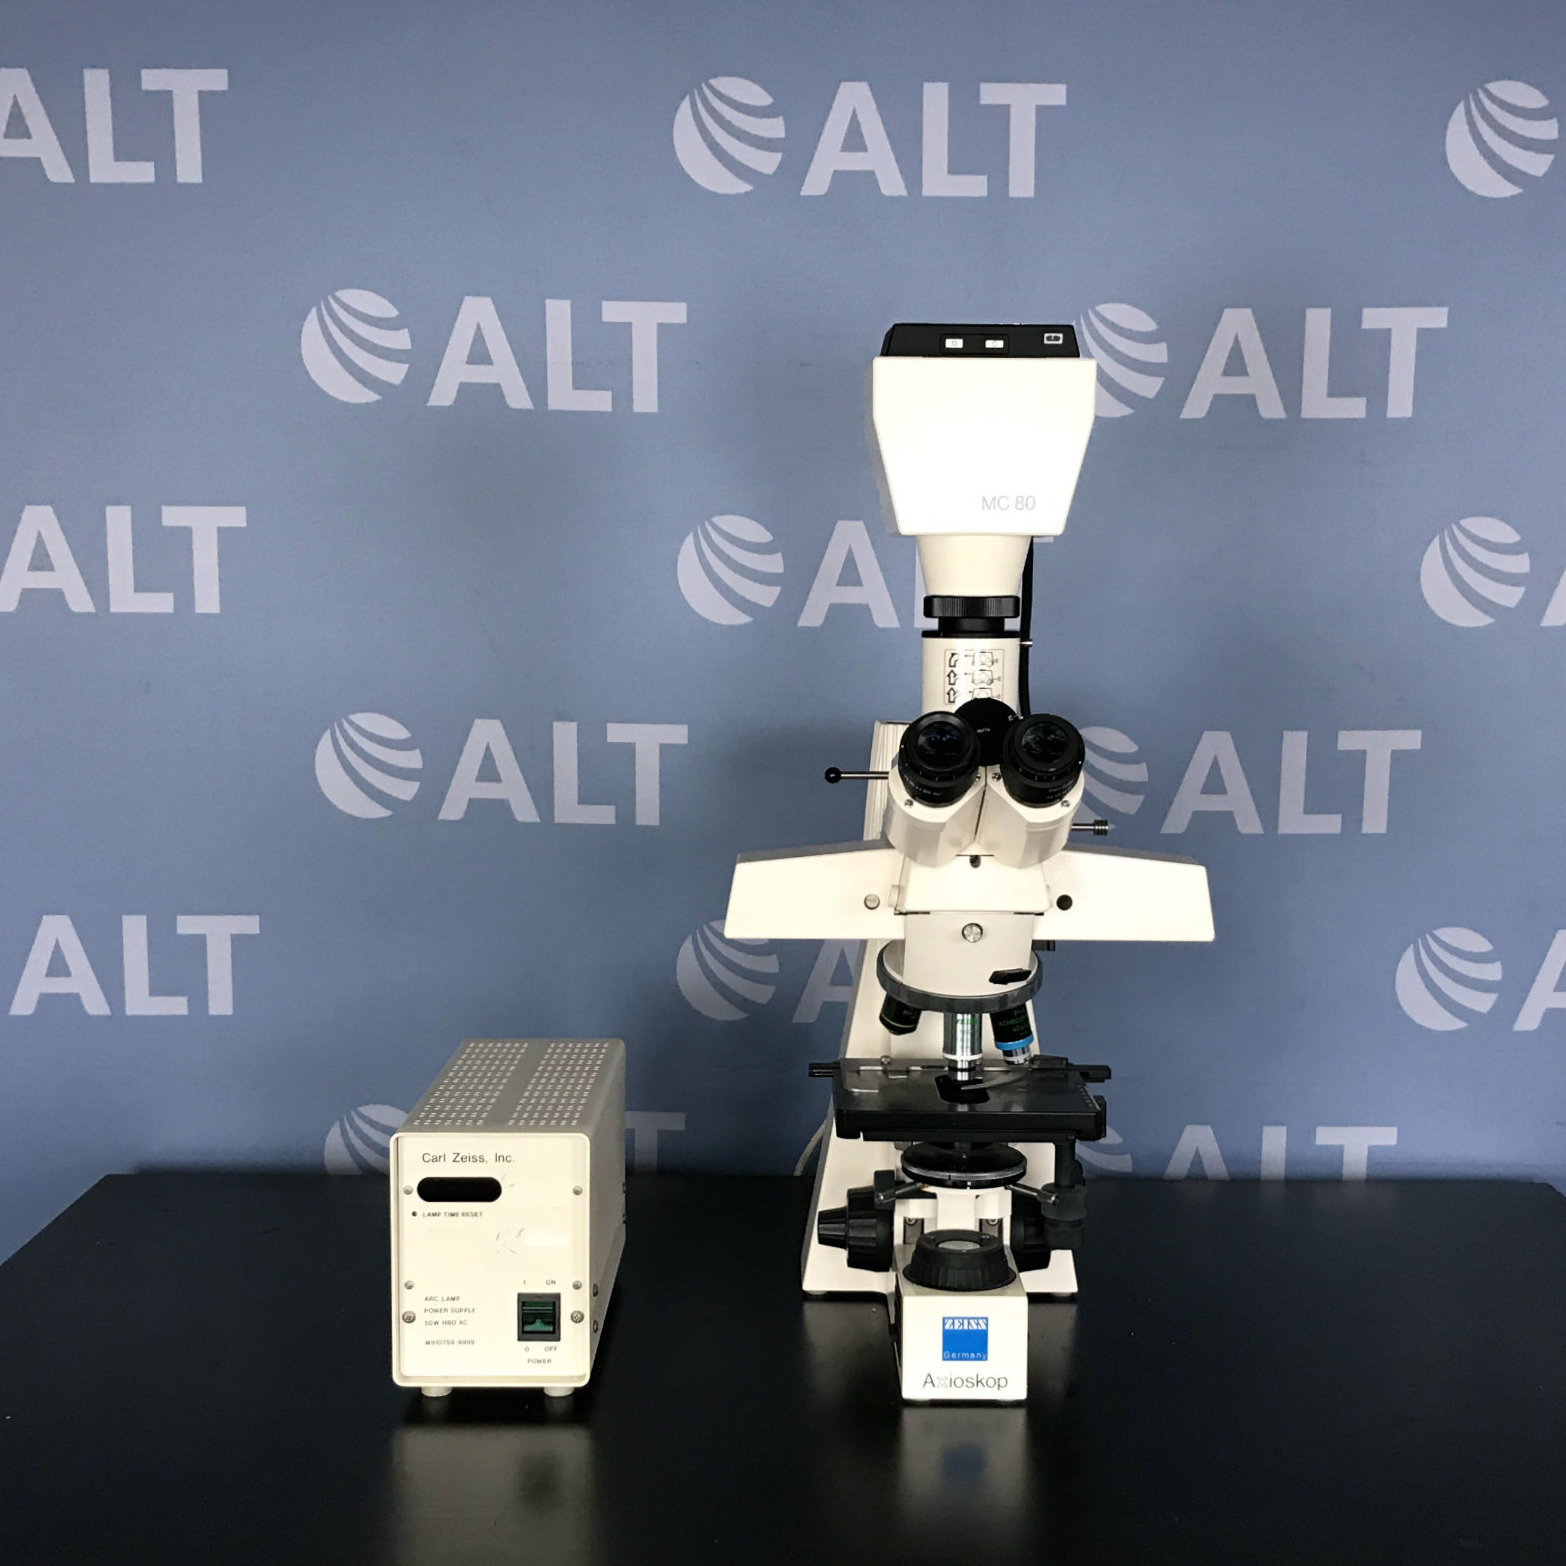 AxioSkop Upright Fluorescence Microscope Name